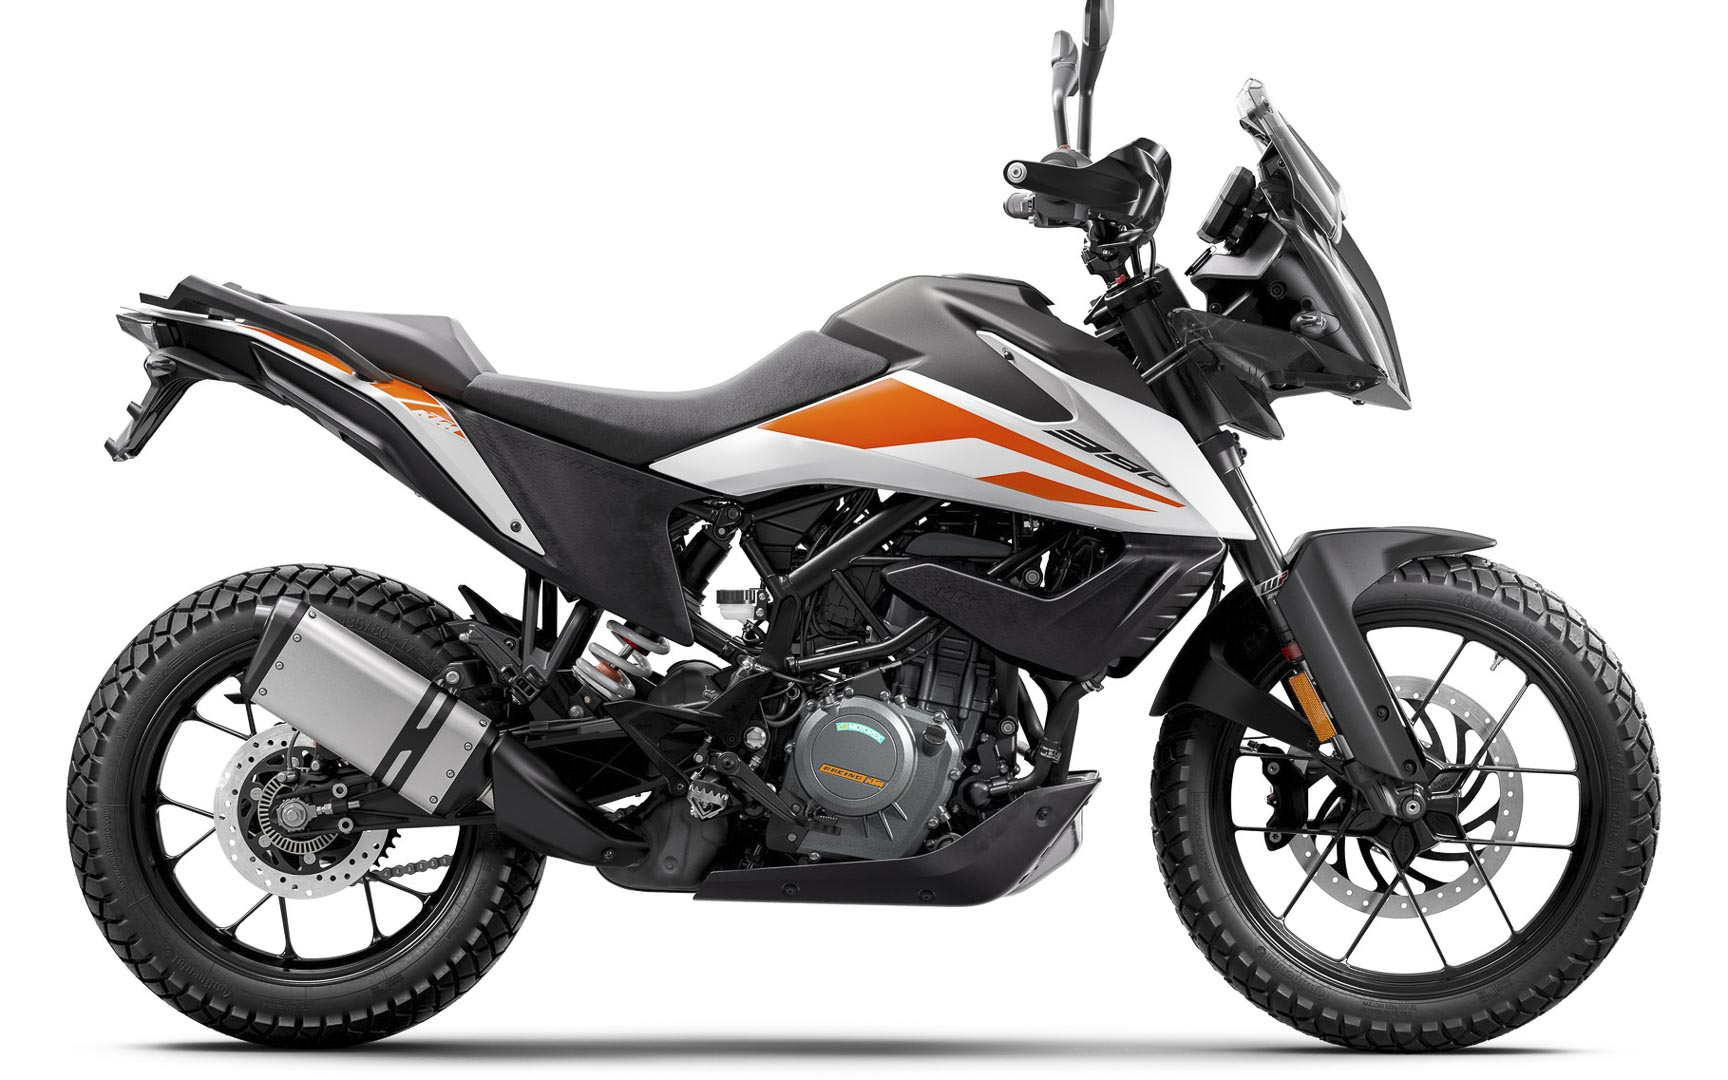 Dimensions 2020 KTM 390 Adventure Motorcycle A2 License frien